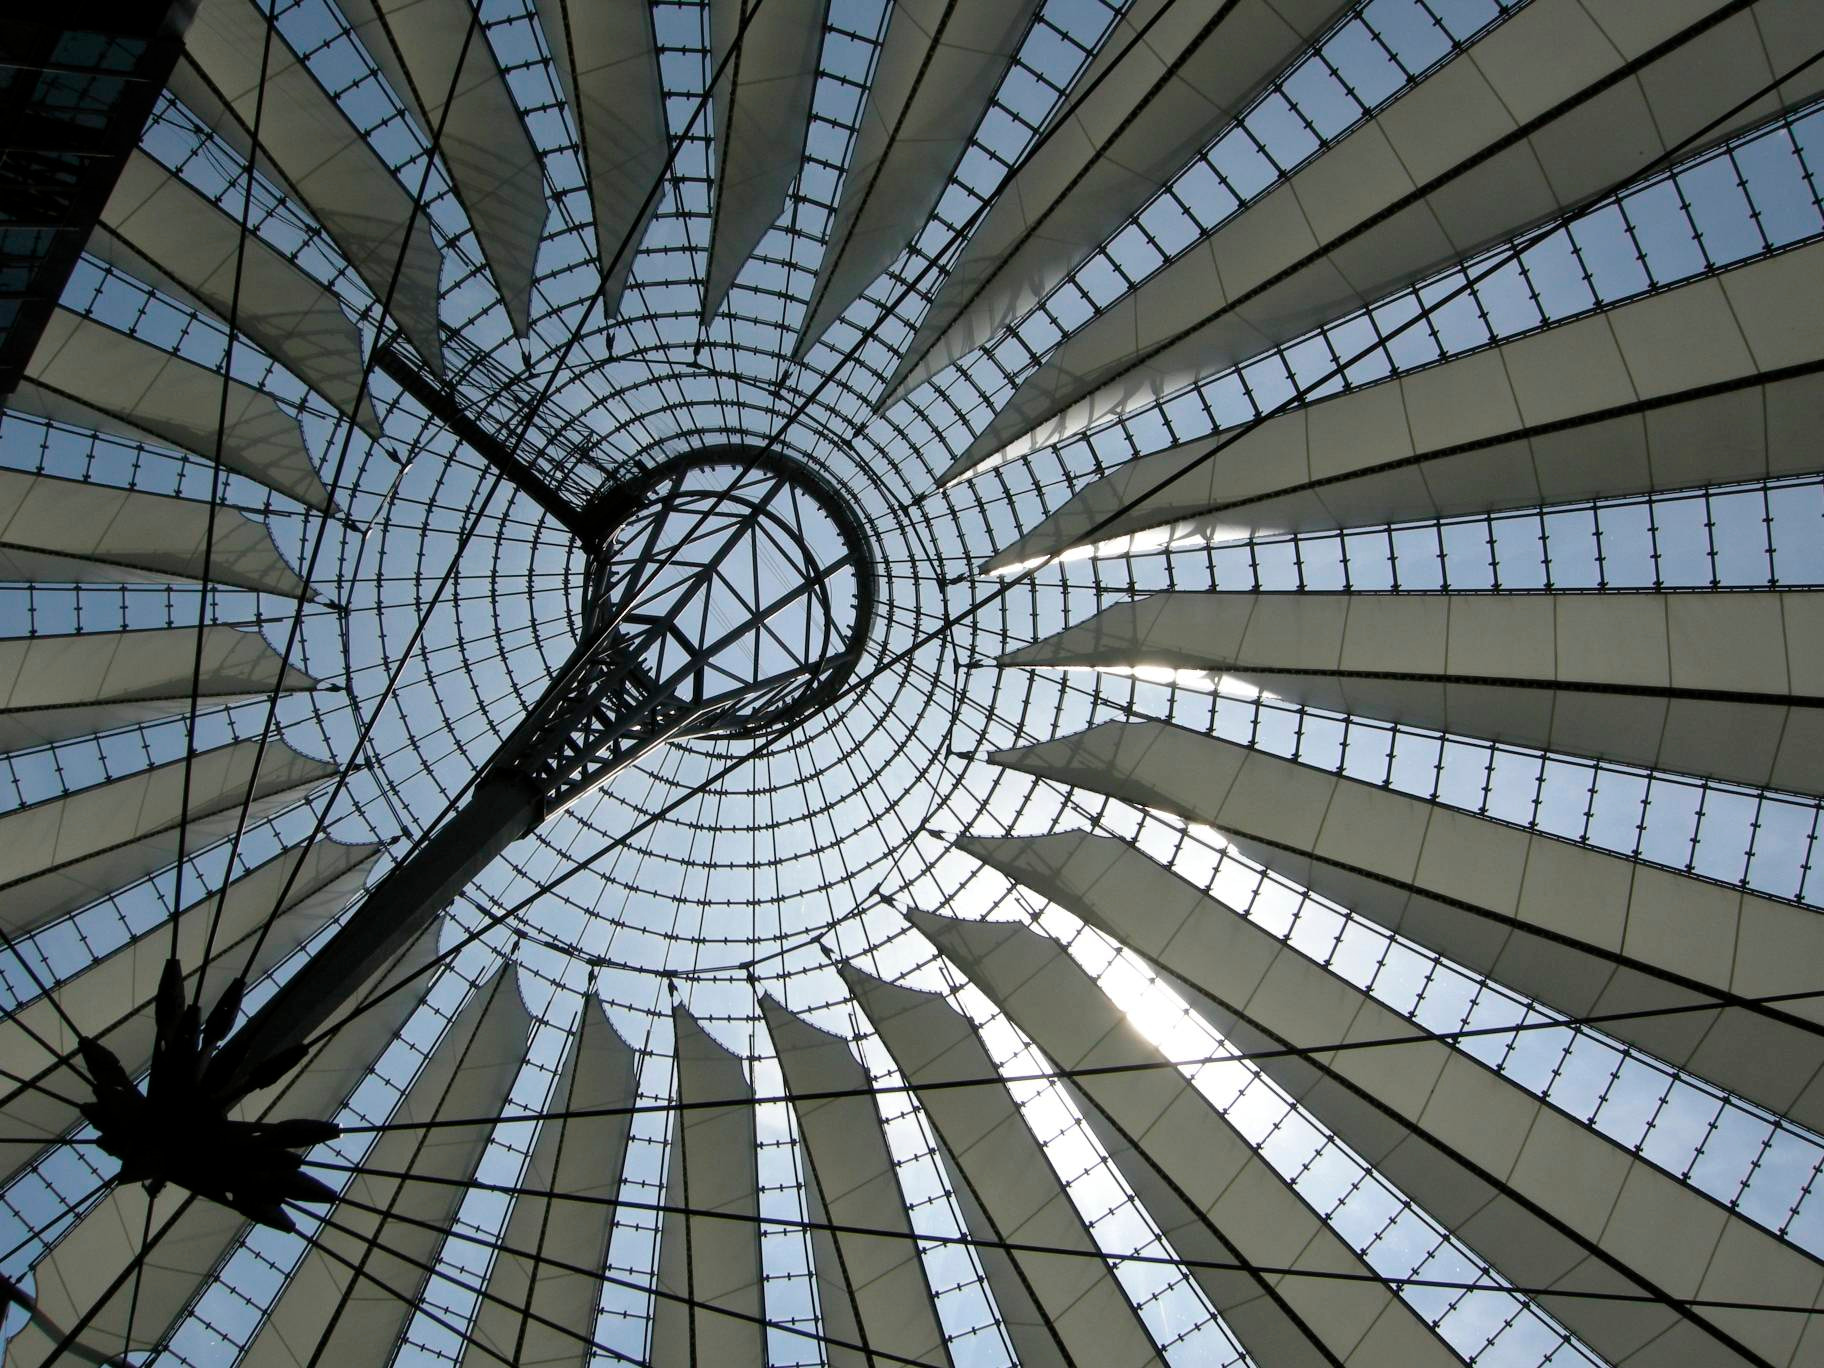 Photograph Sony Center by Guido Merkelbach on 500px